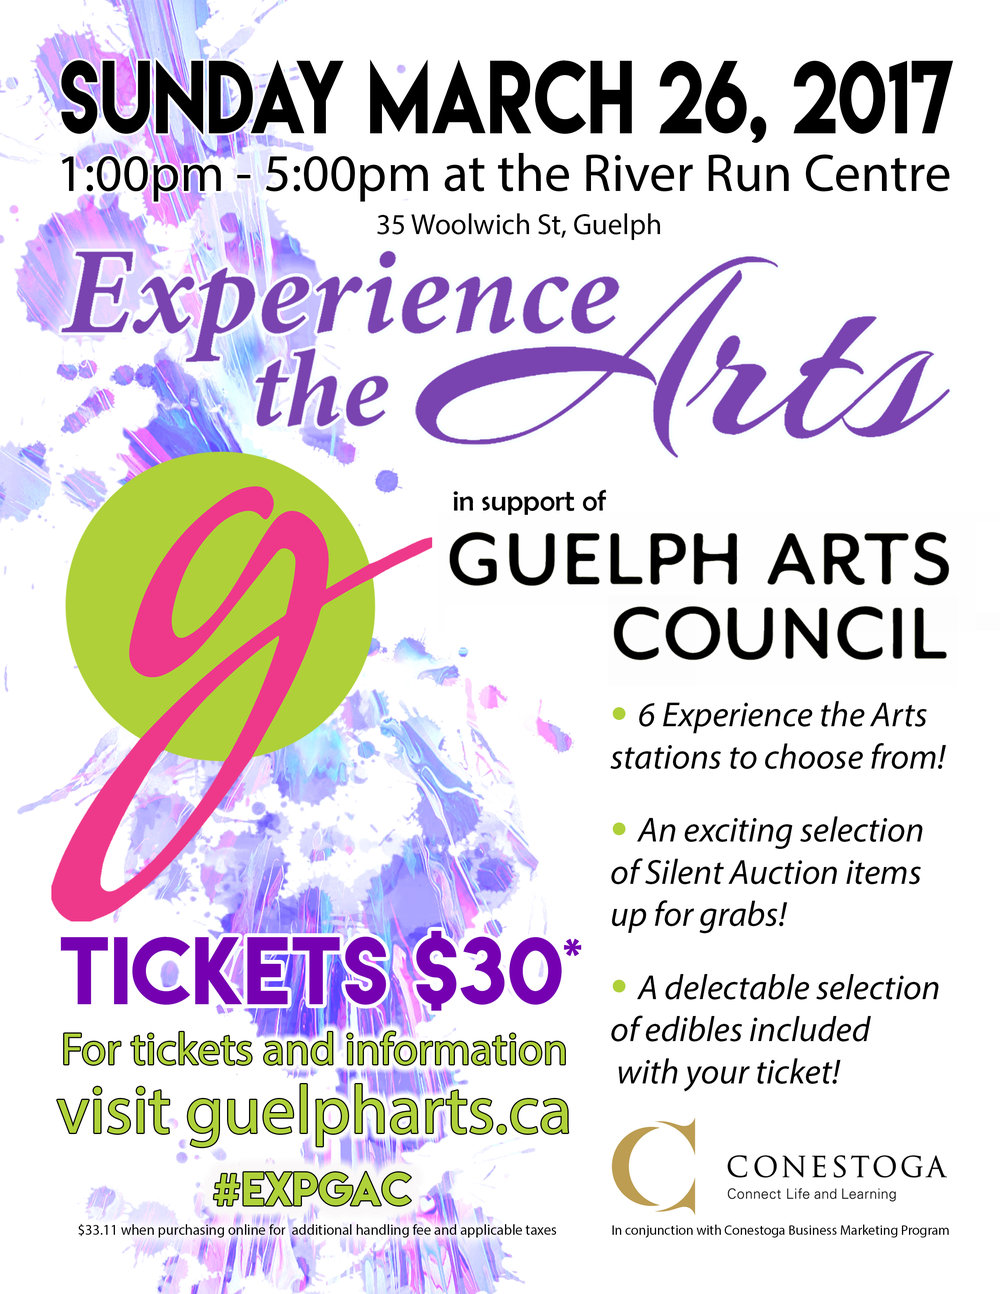 Guelph Arts Council: Experience the Arts